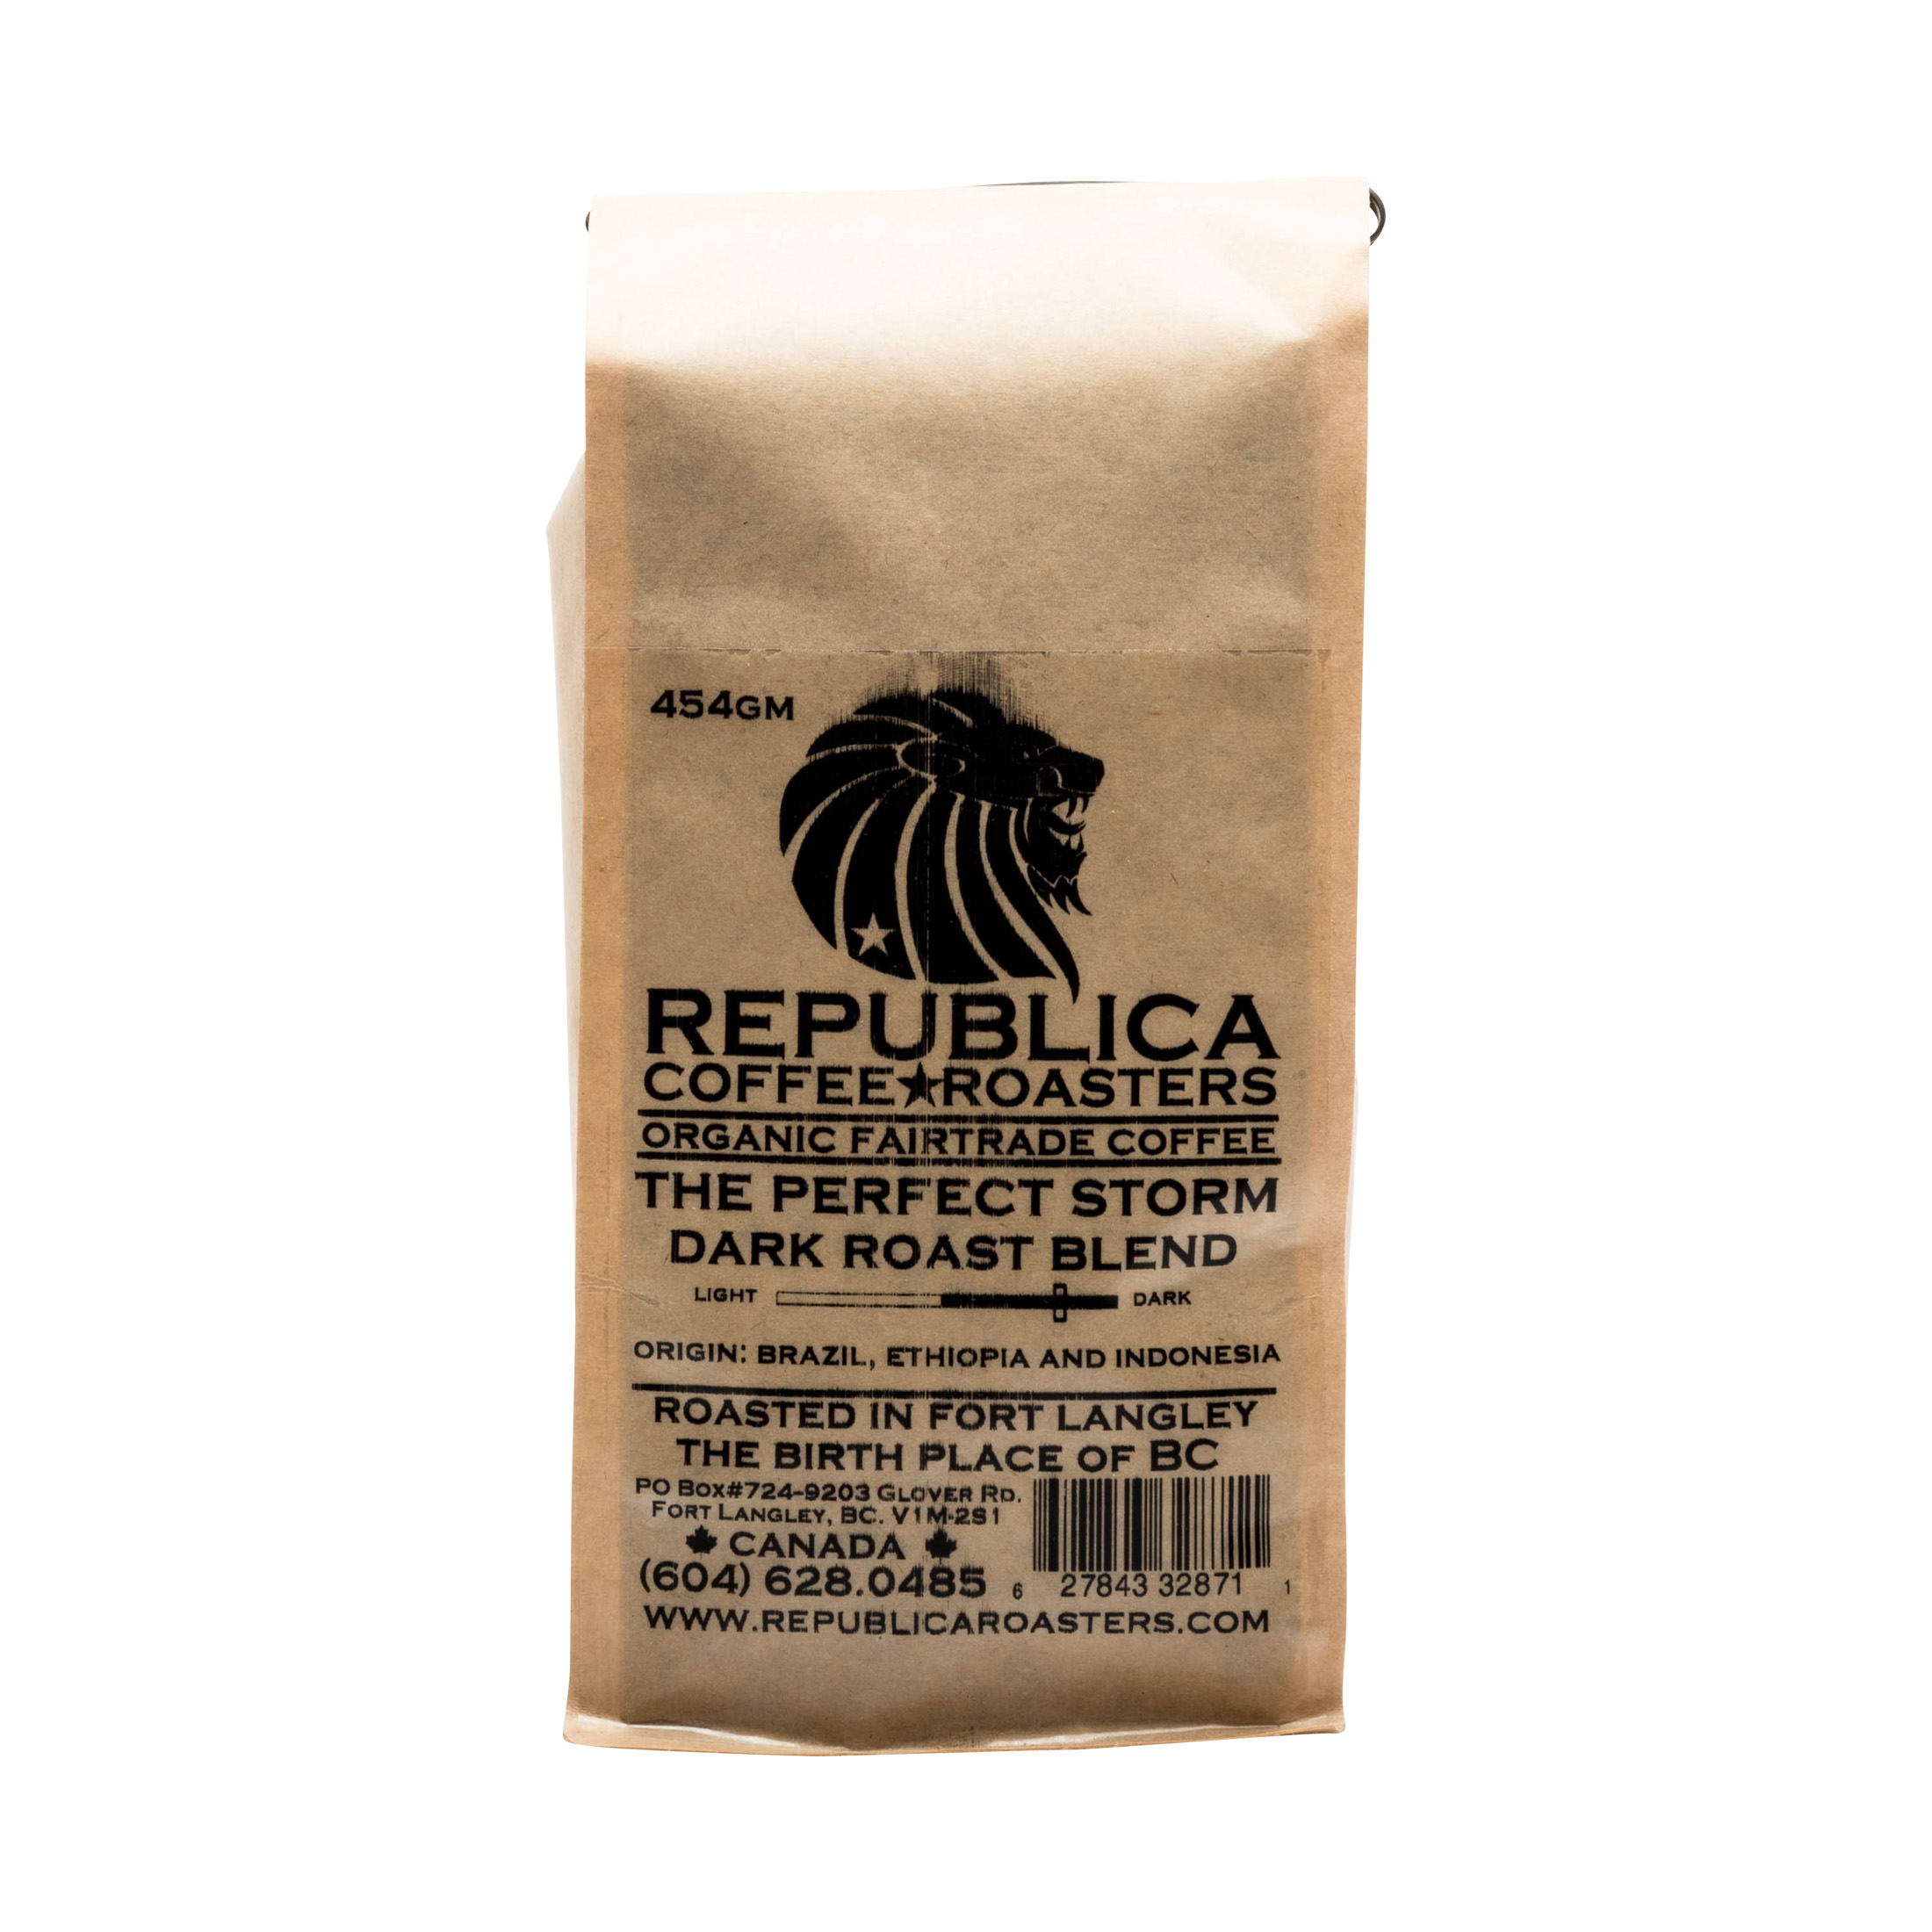 THE PERFECT STORM DARK ROAST BLEND